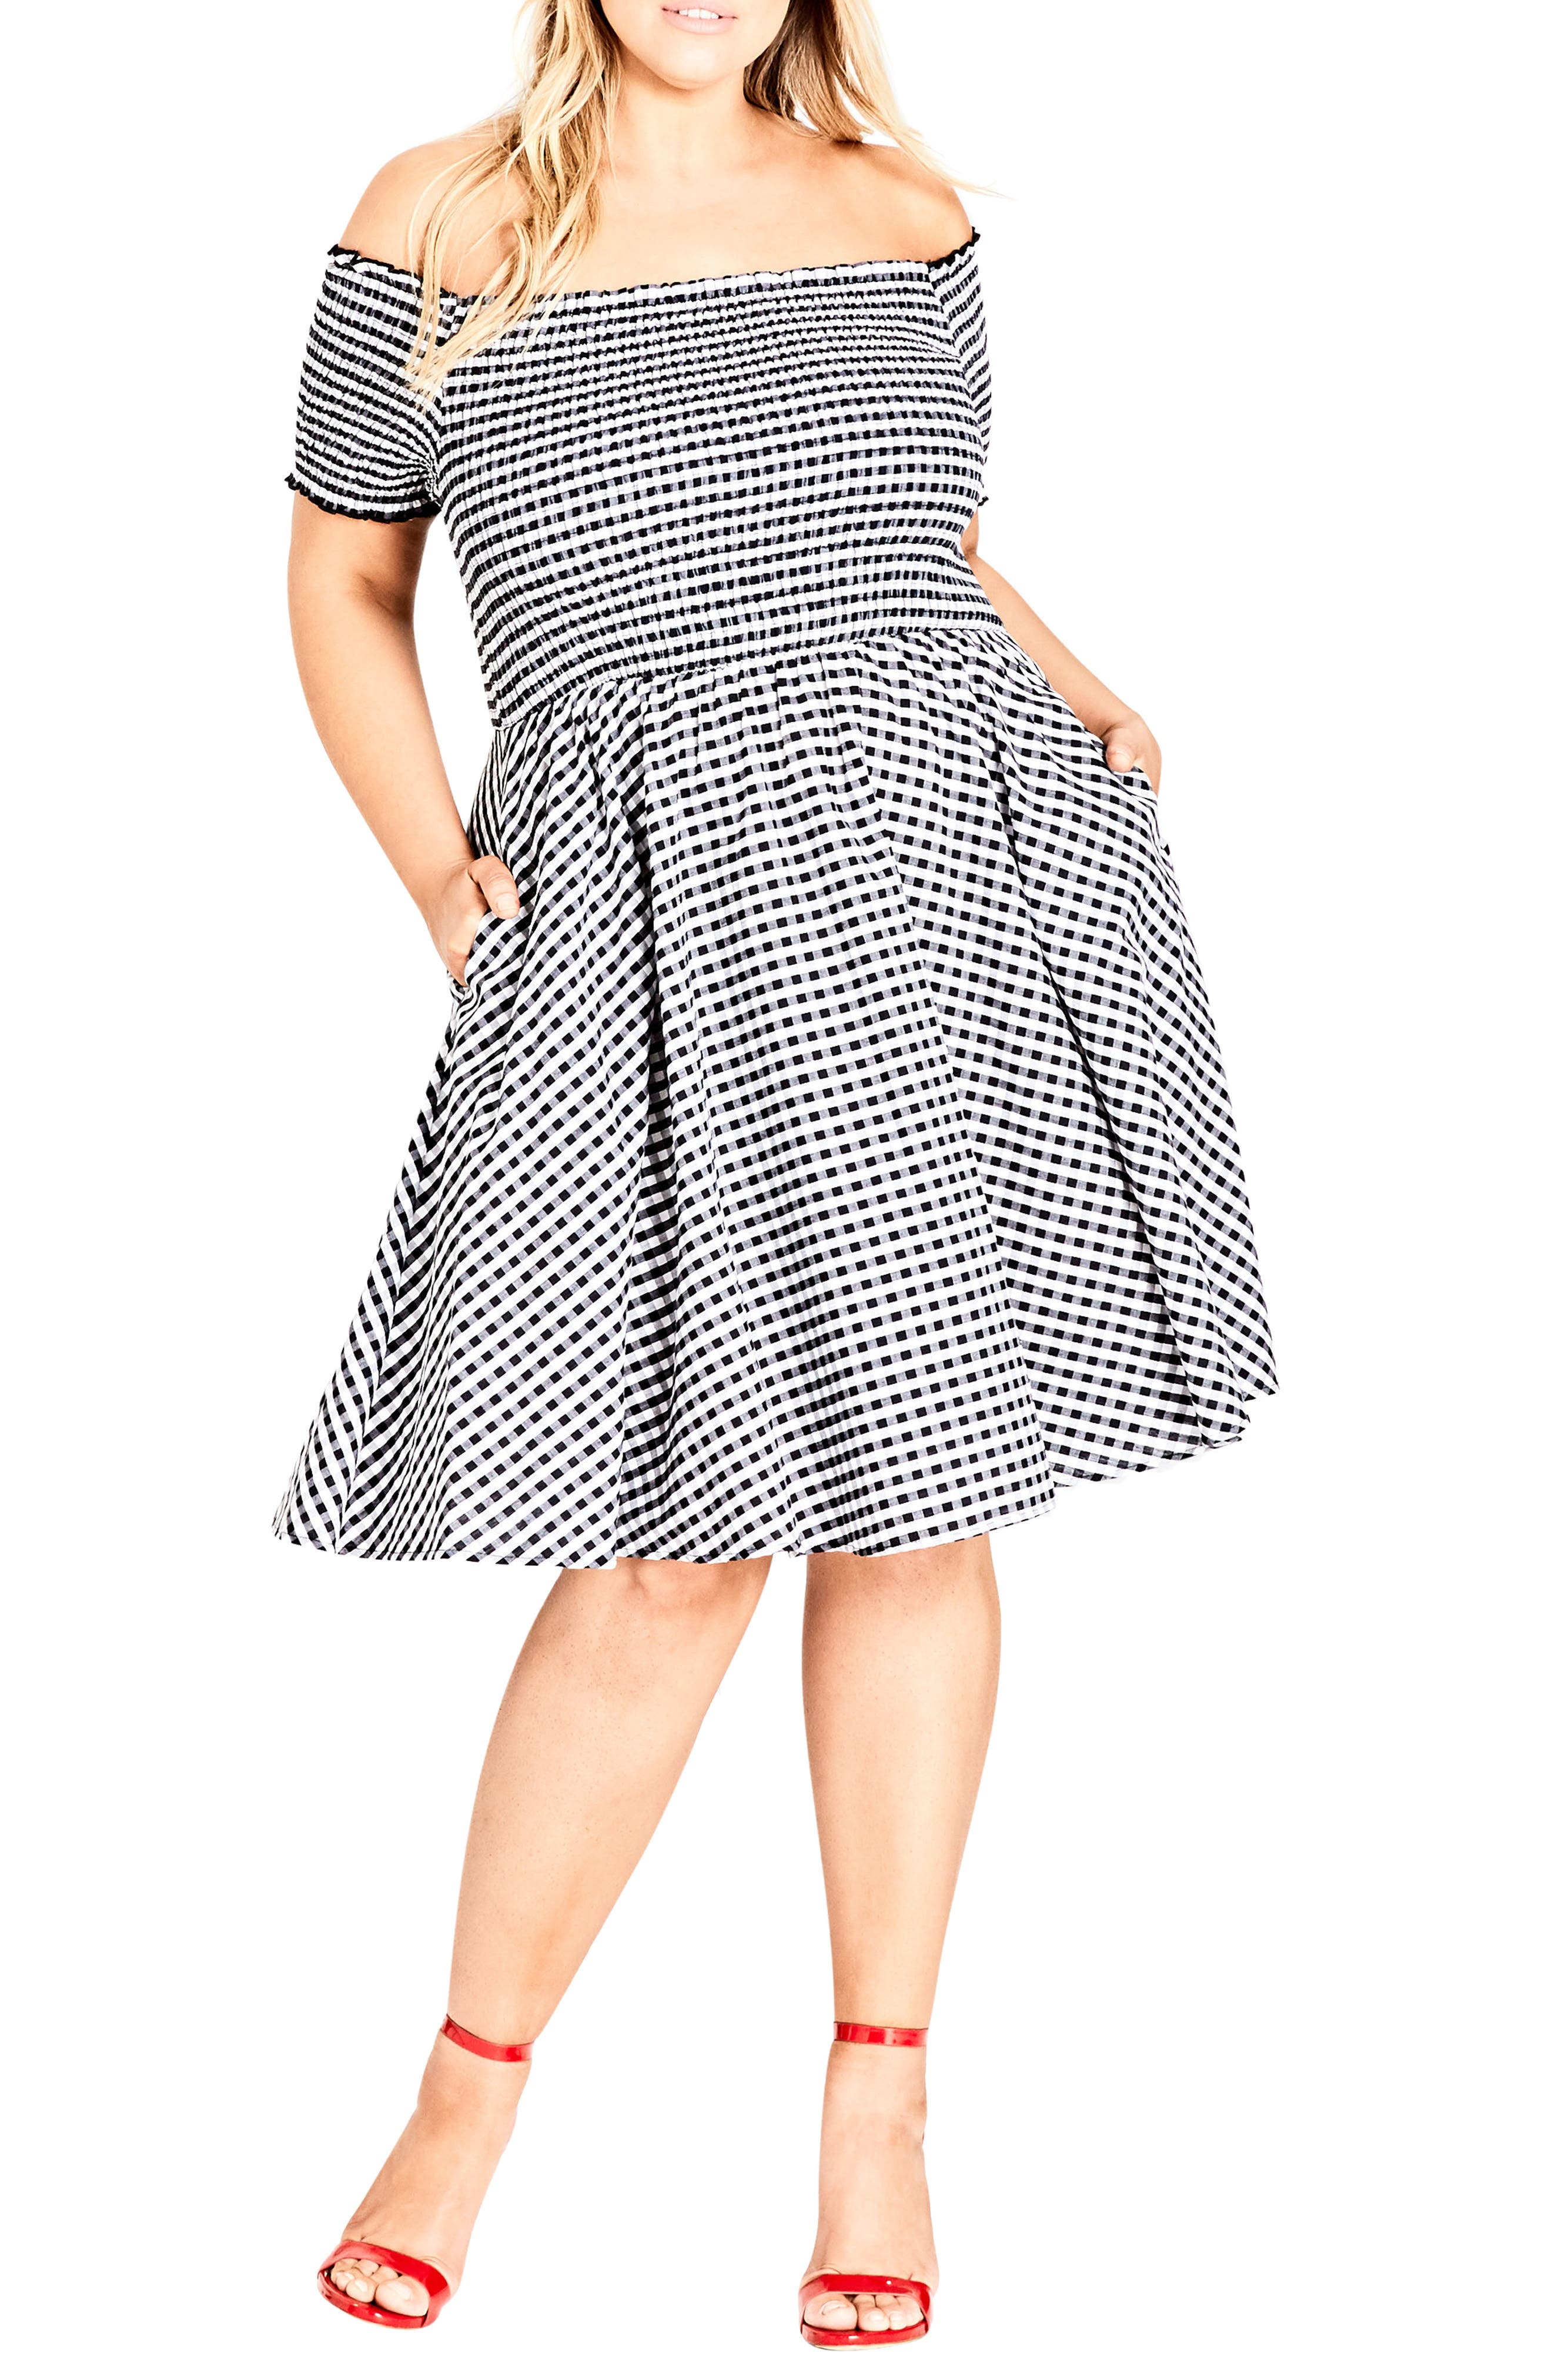 CITY CHIC, Gingham Off the Shoulder Fit & Flare Dress, Main thumbnail 1, color, GINGHAM